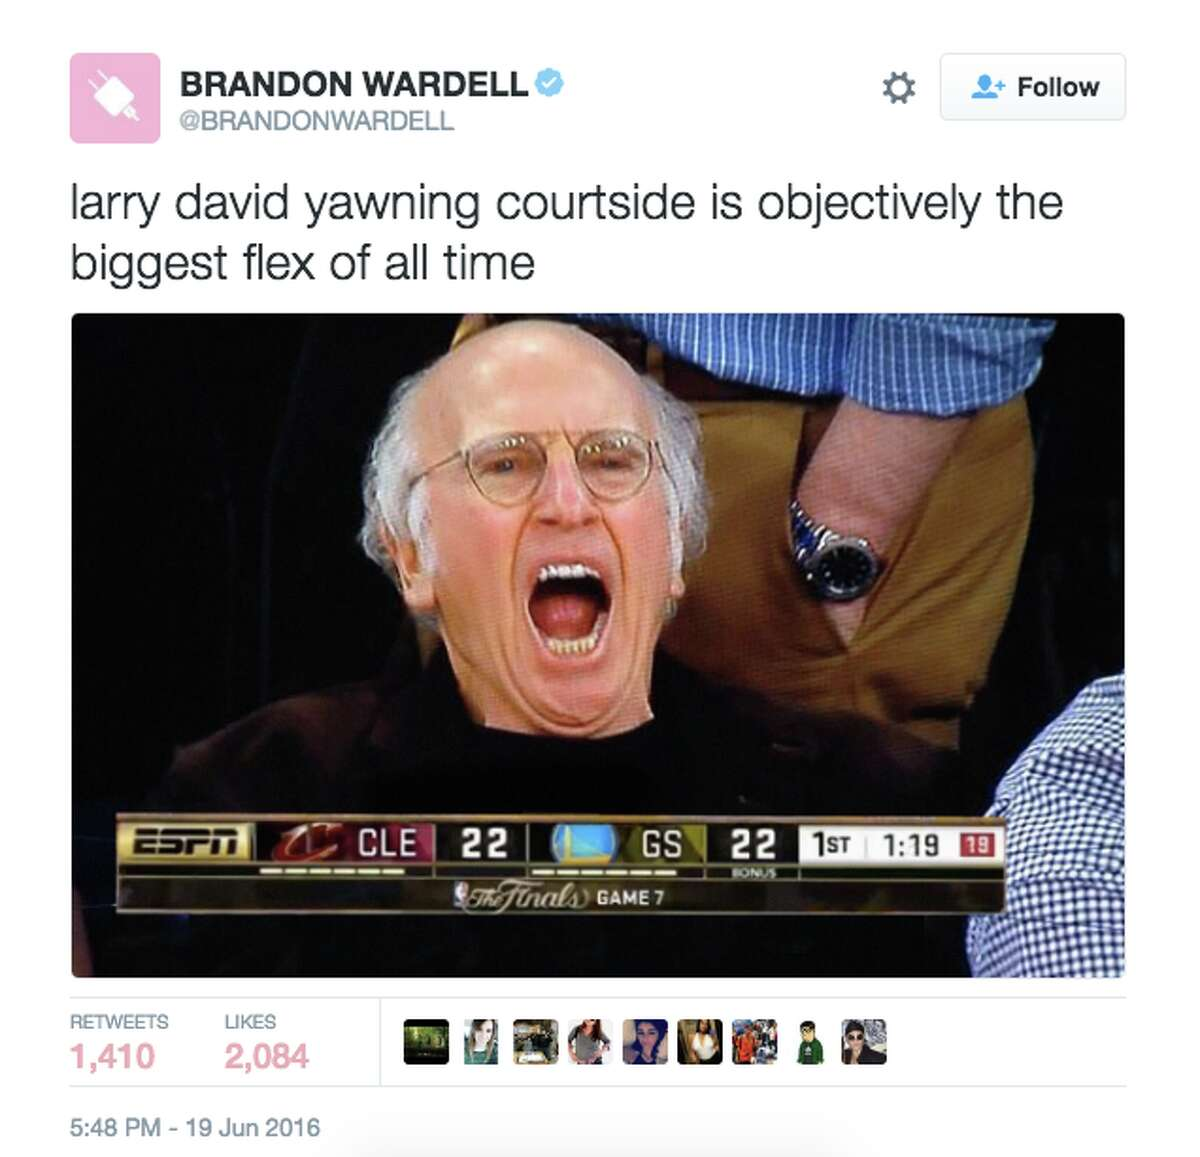 Fans reacted to Game 7 of the NBA Finals on social media.